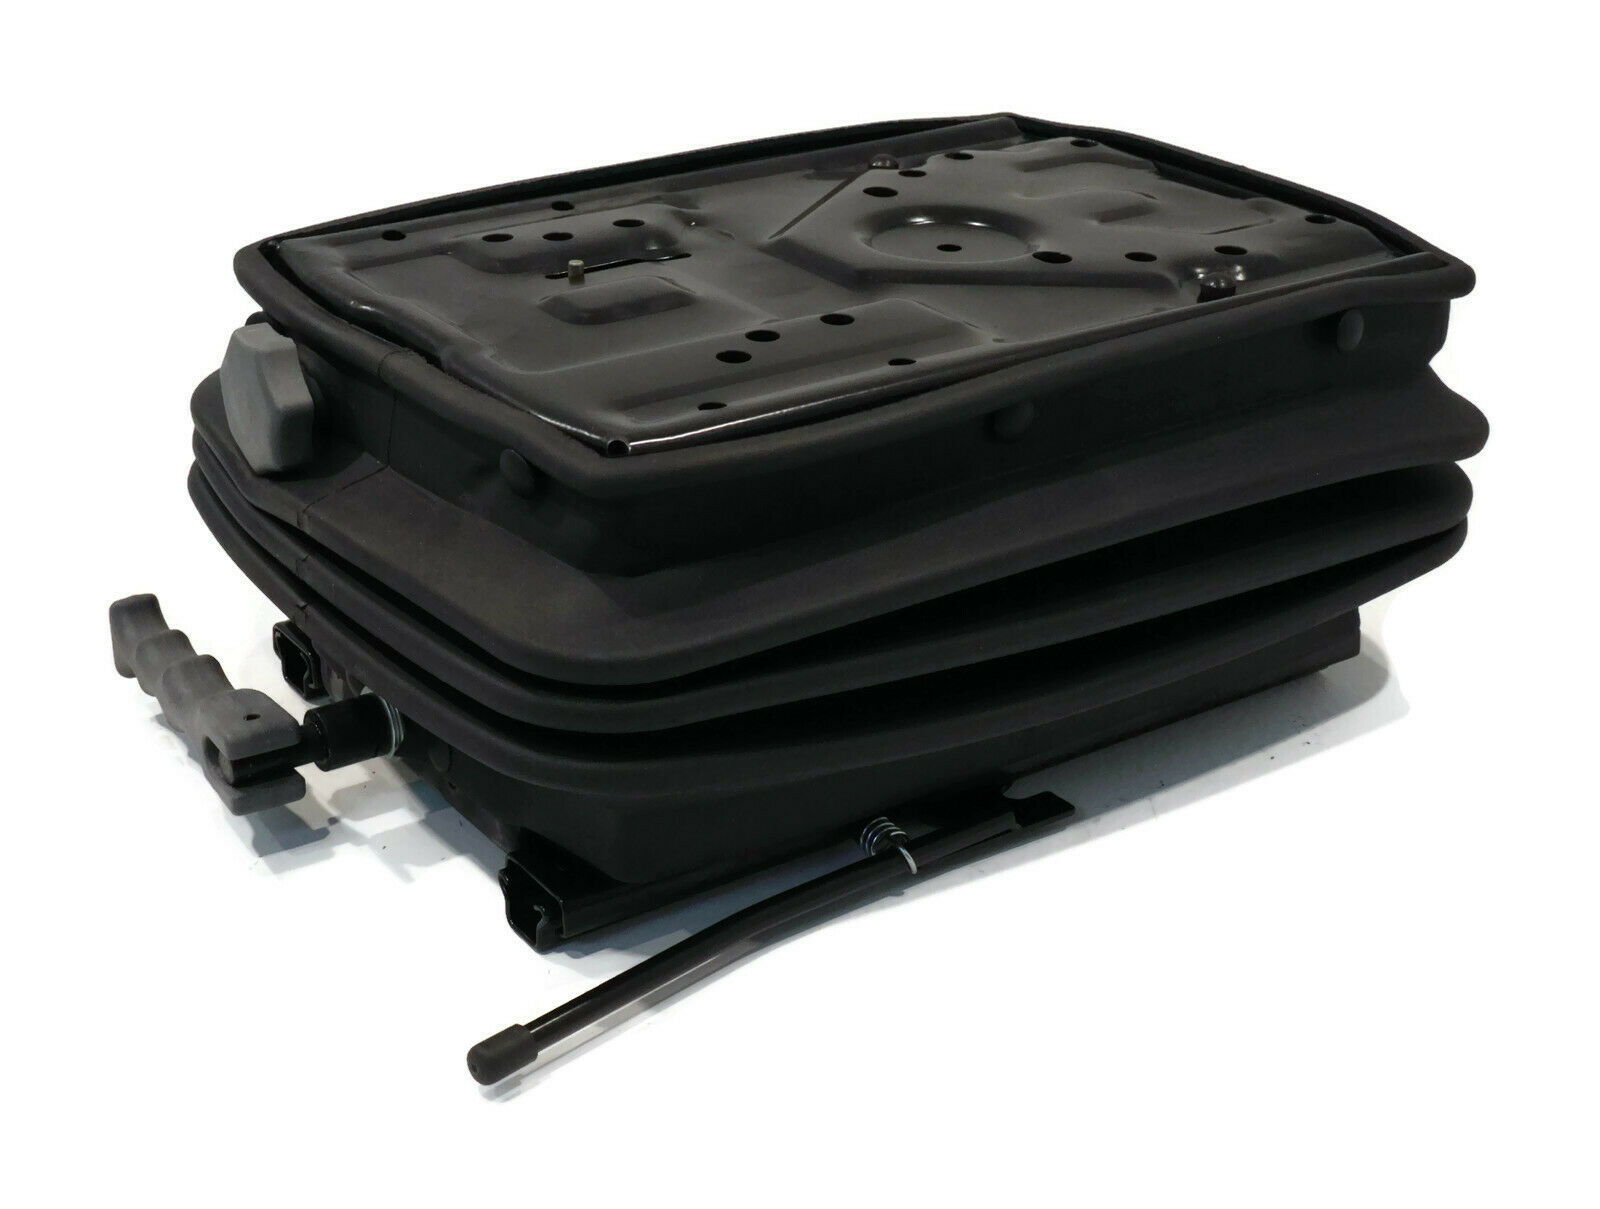 NEW Universal SUSPENSION SEAT KIT for Lawn Mowers Tractors Riders Zero Turns